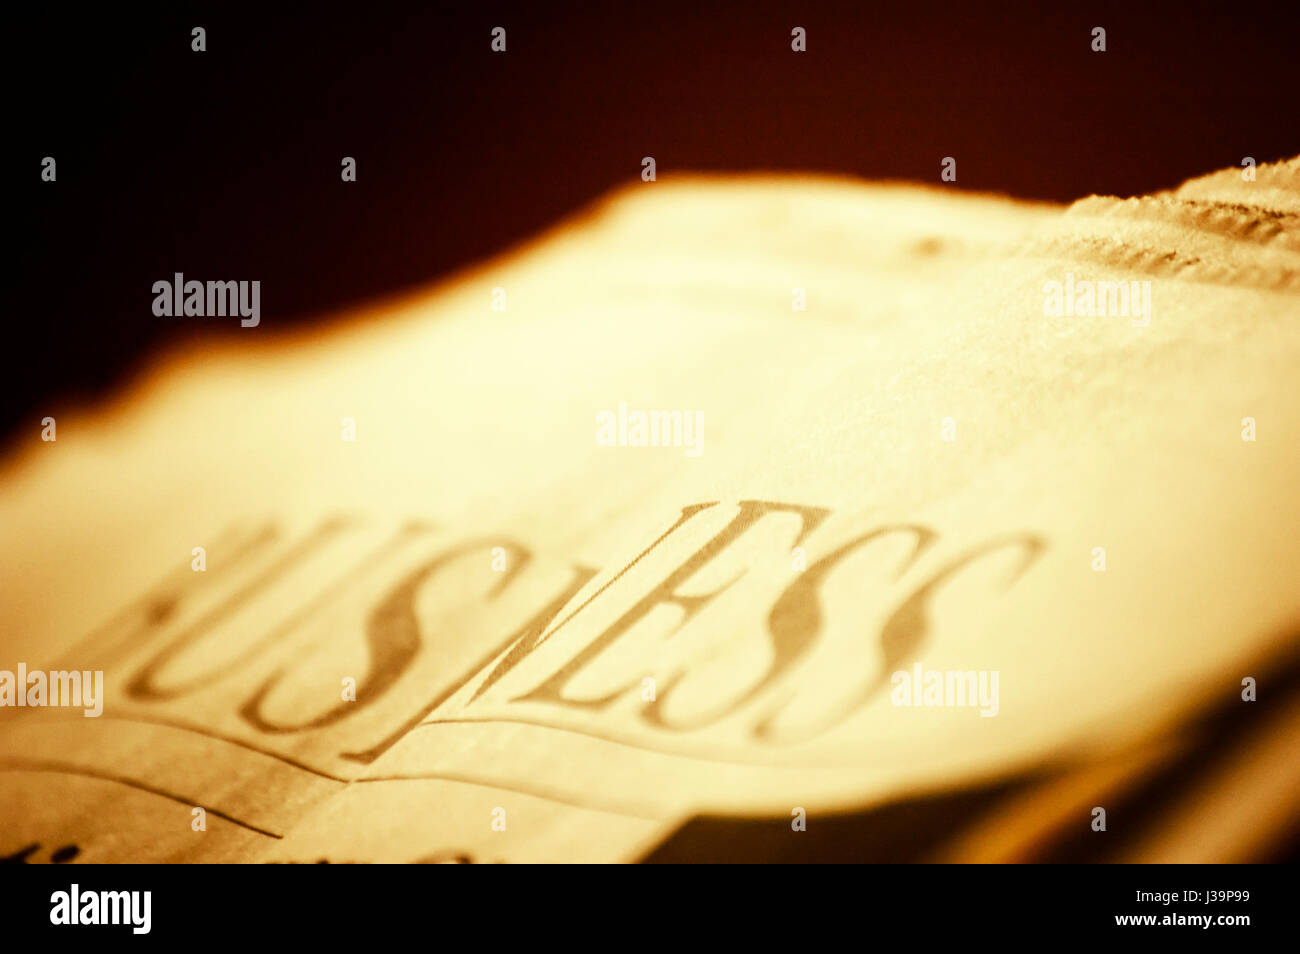 newspaper closeup with Business section headline - Stock Image